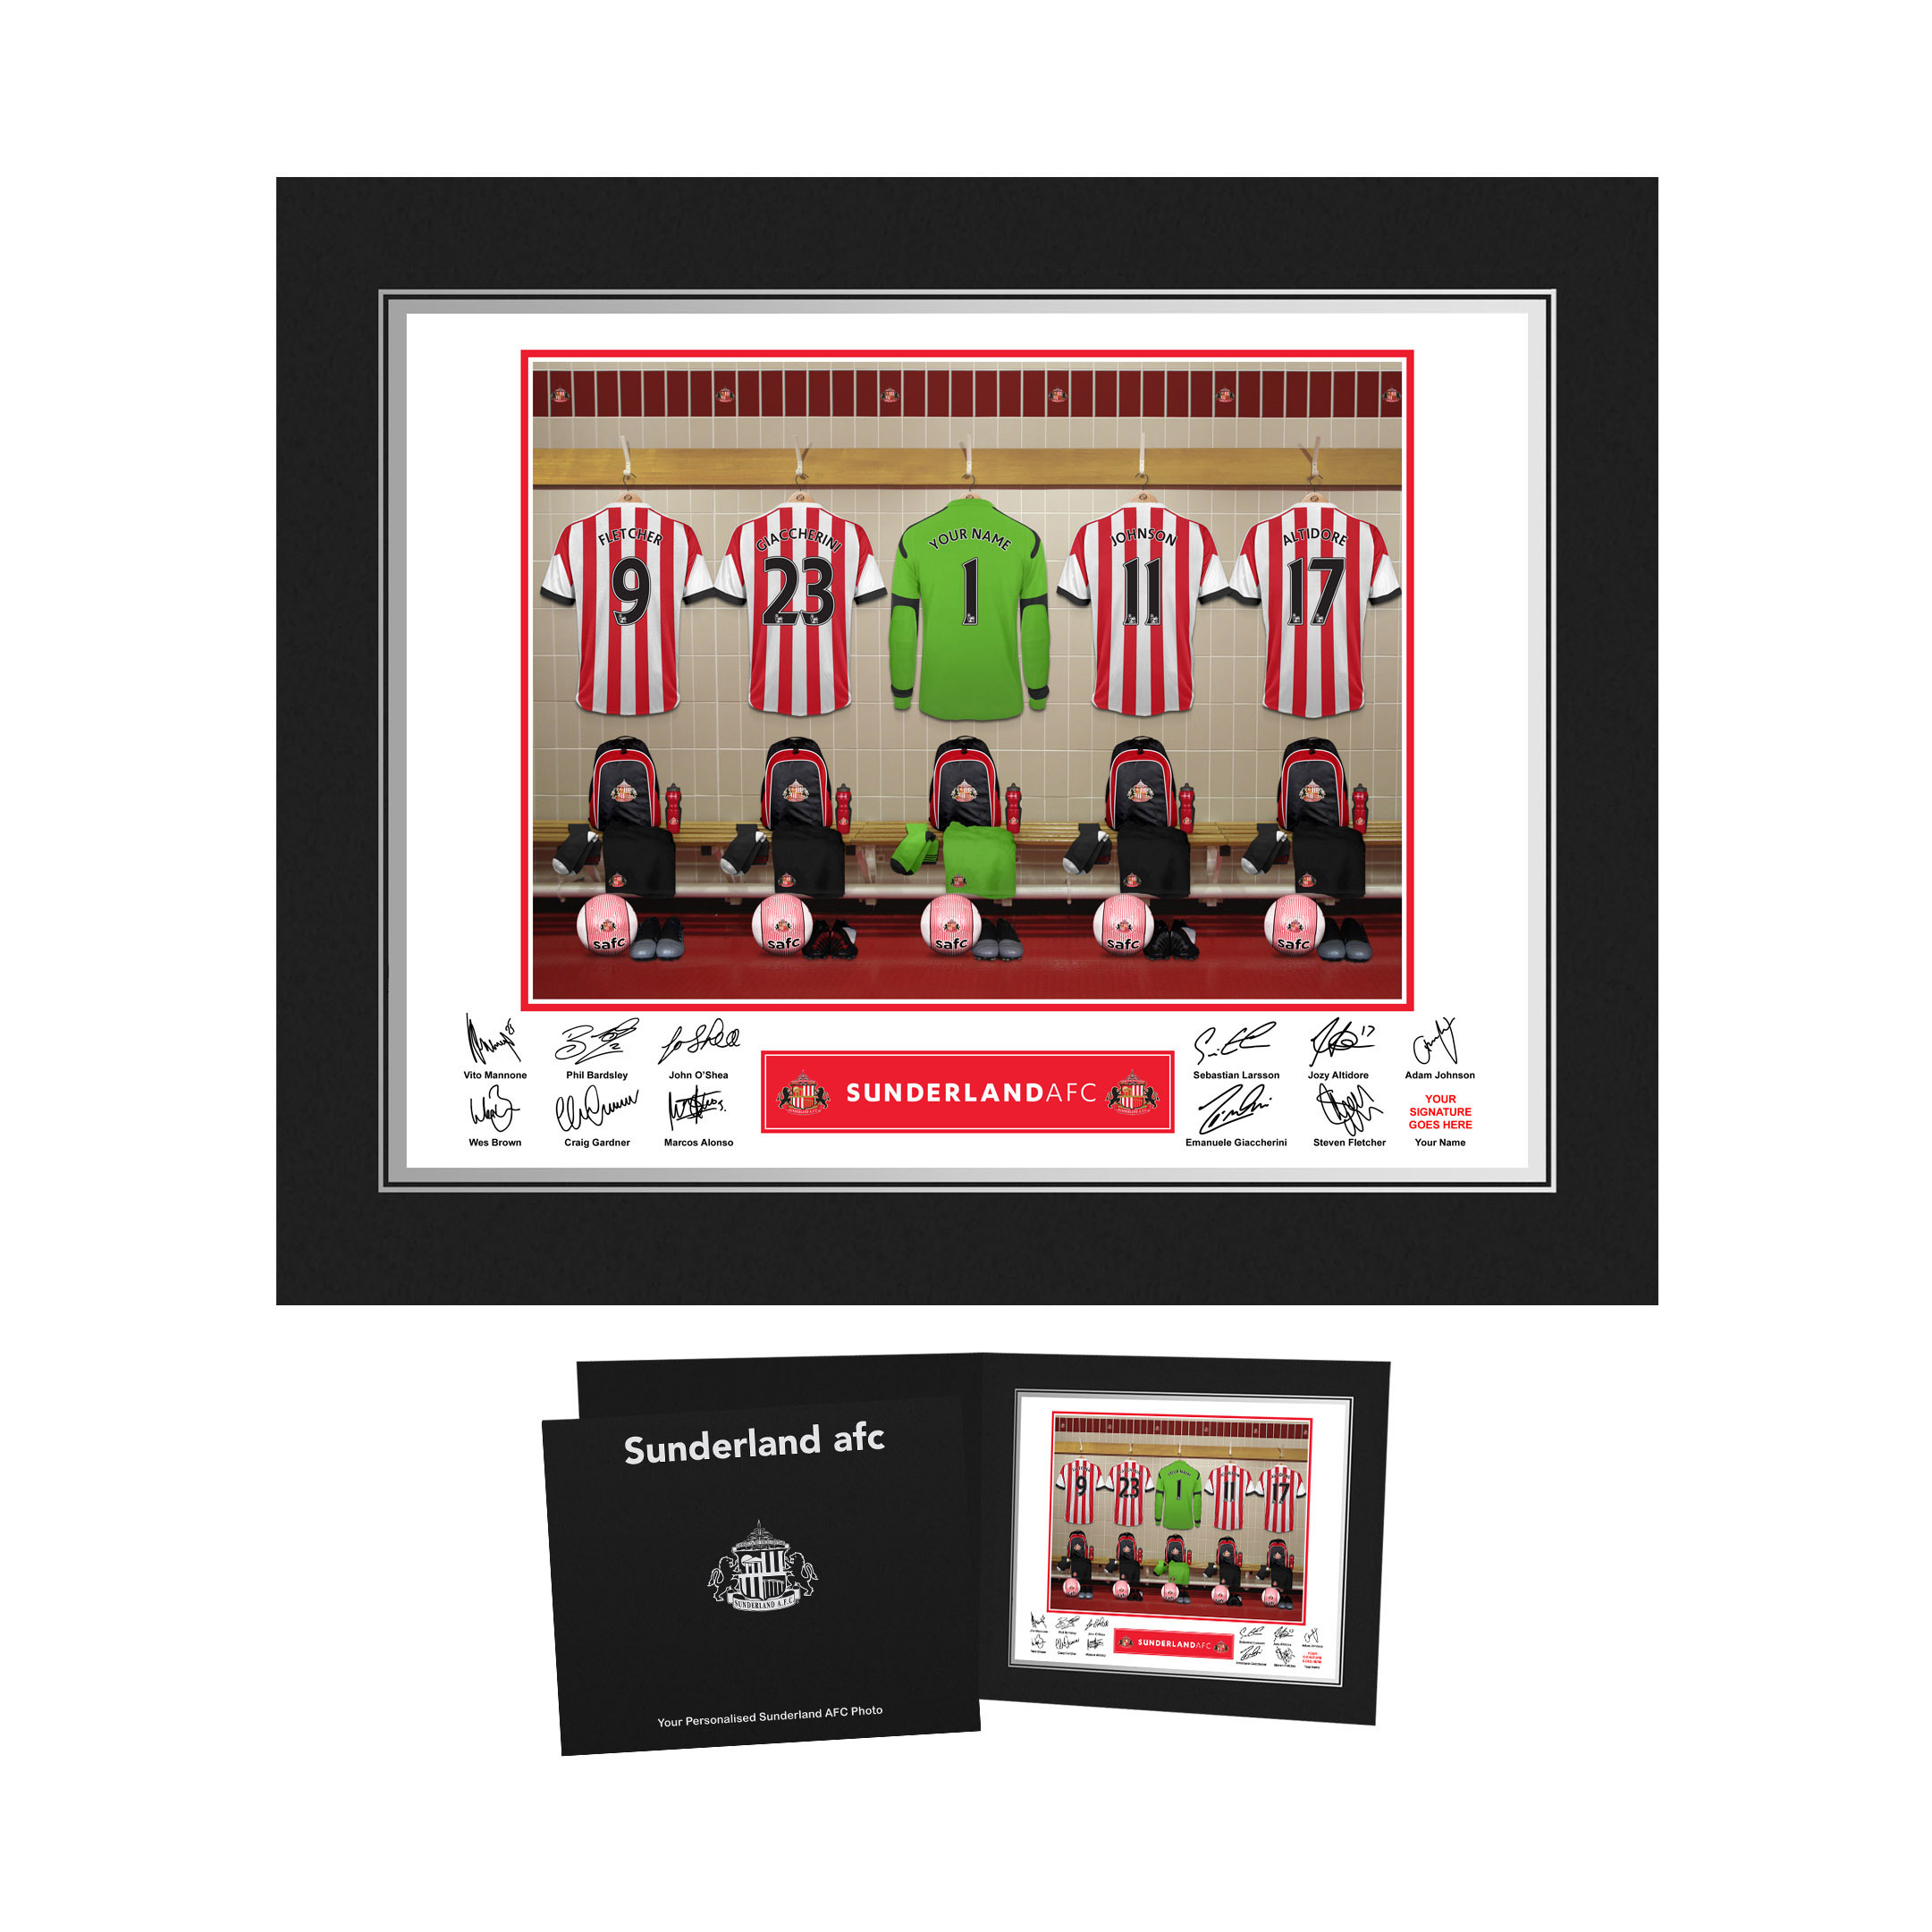 Sunderland Personalised Goalkeeper Dressing Room Photo in Presentation Folder